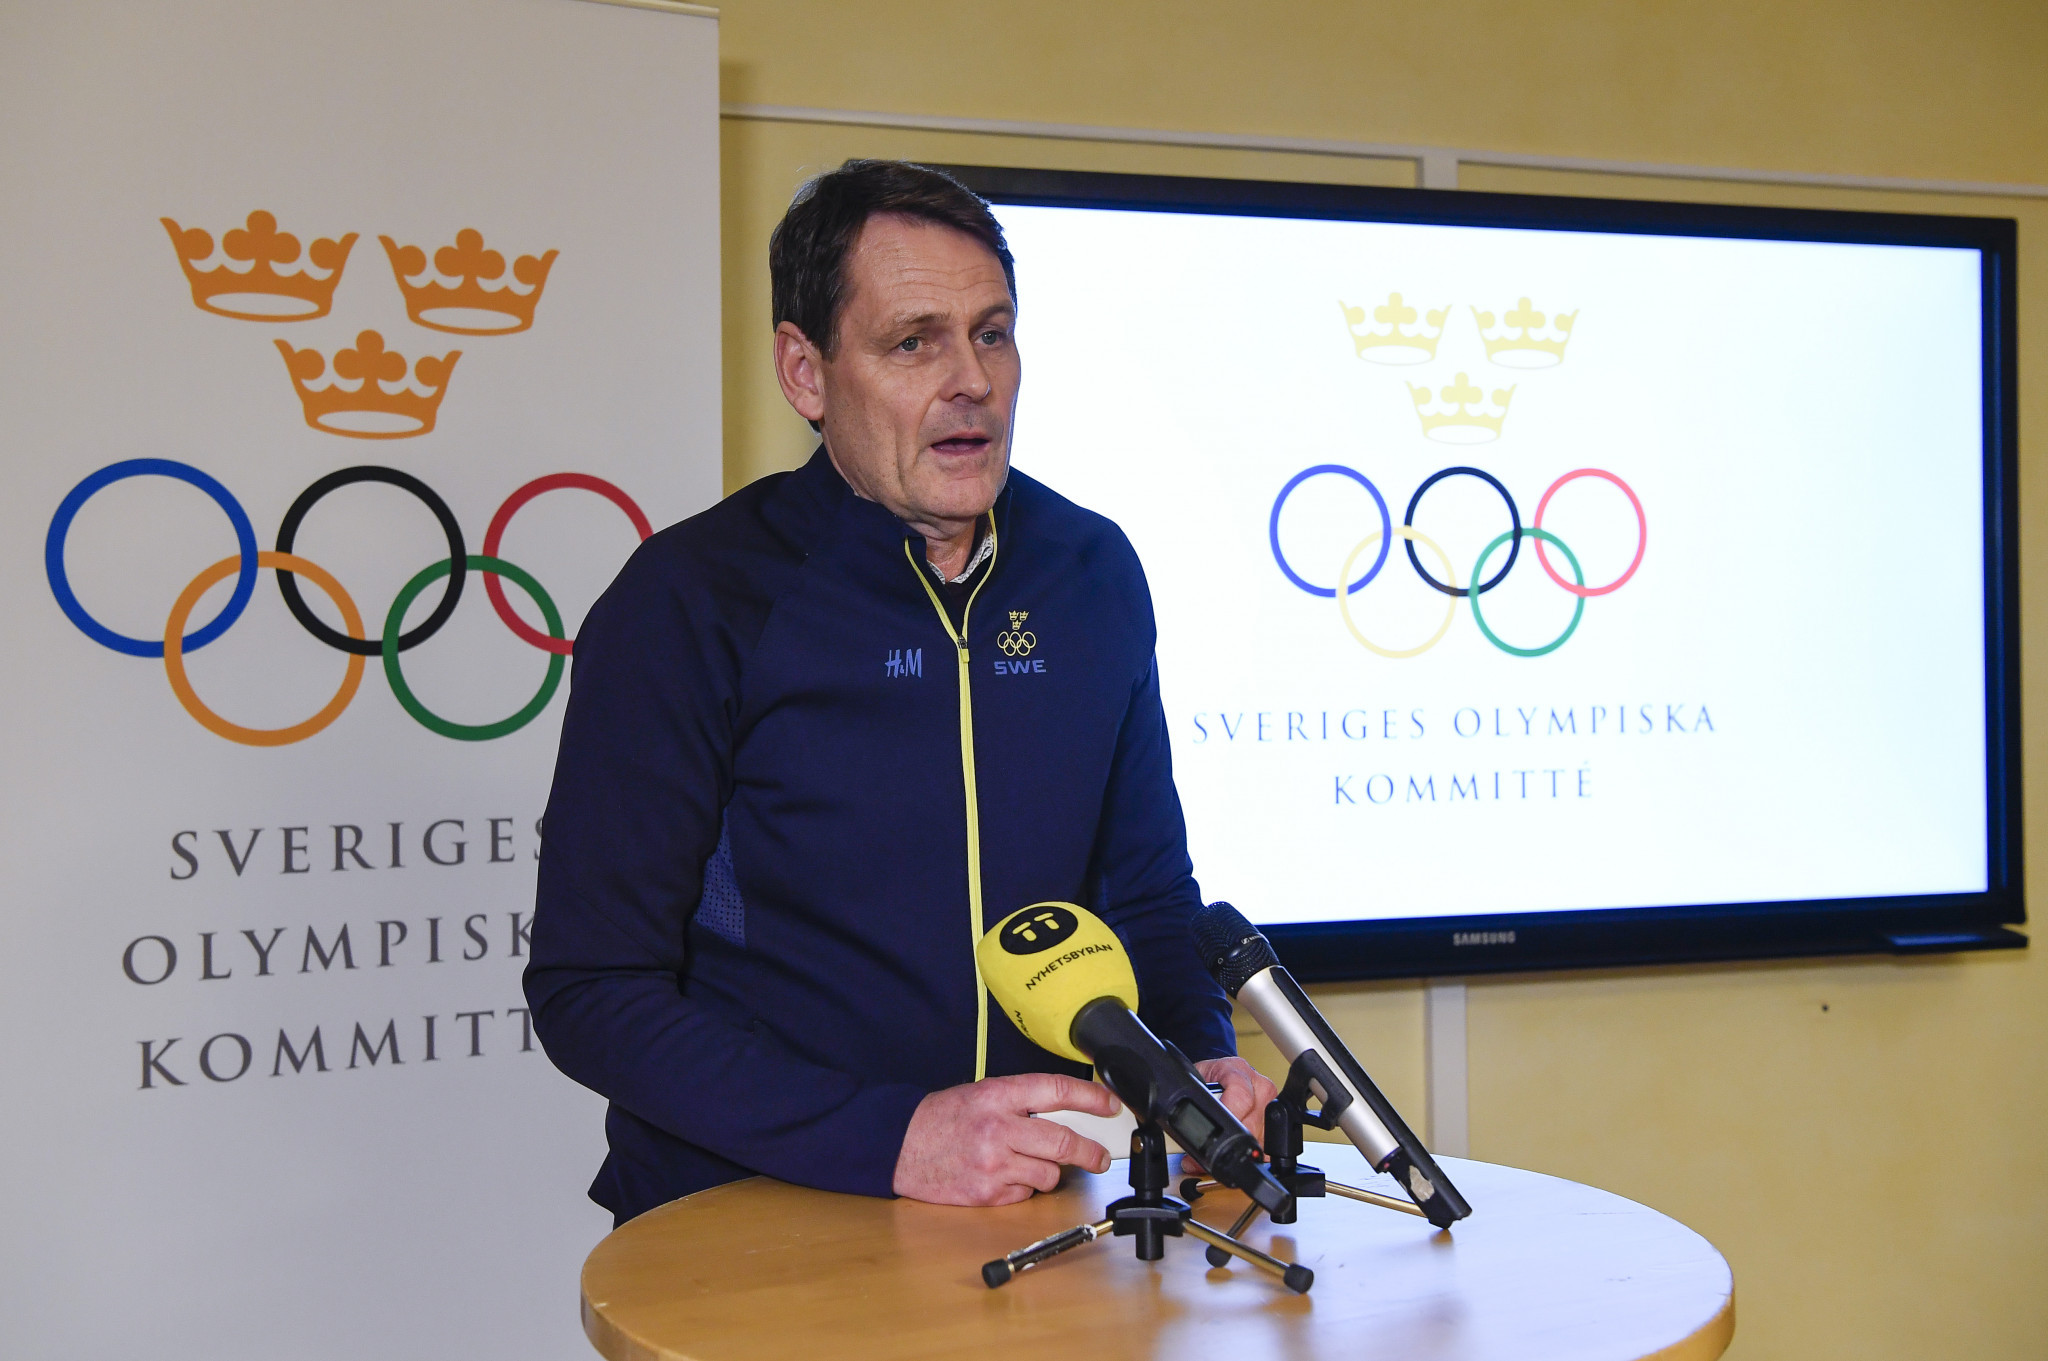 Swedish Olympic Committee chief executive, Peter Reinebo pictured speaking about the potential Stockholm 2026 bid, has risked an IOC warning after speaking about rival contenders ©Getty Images